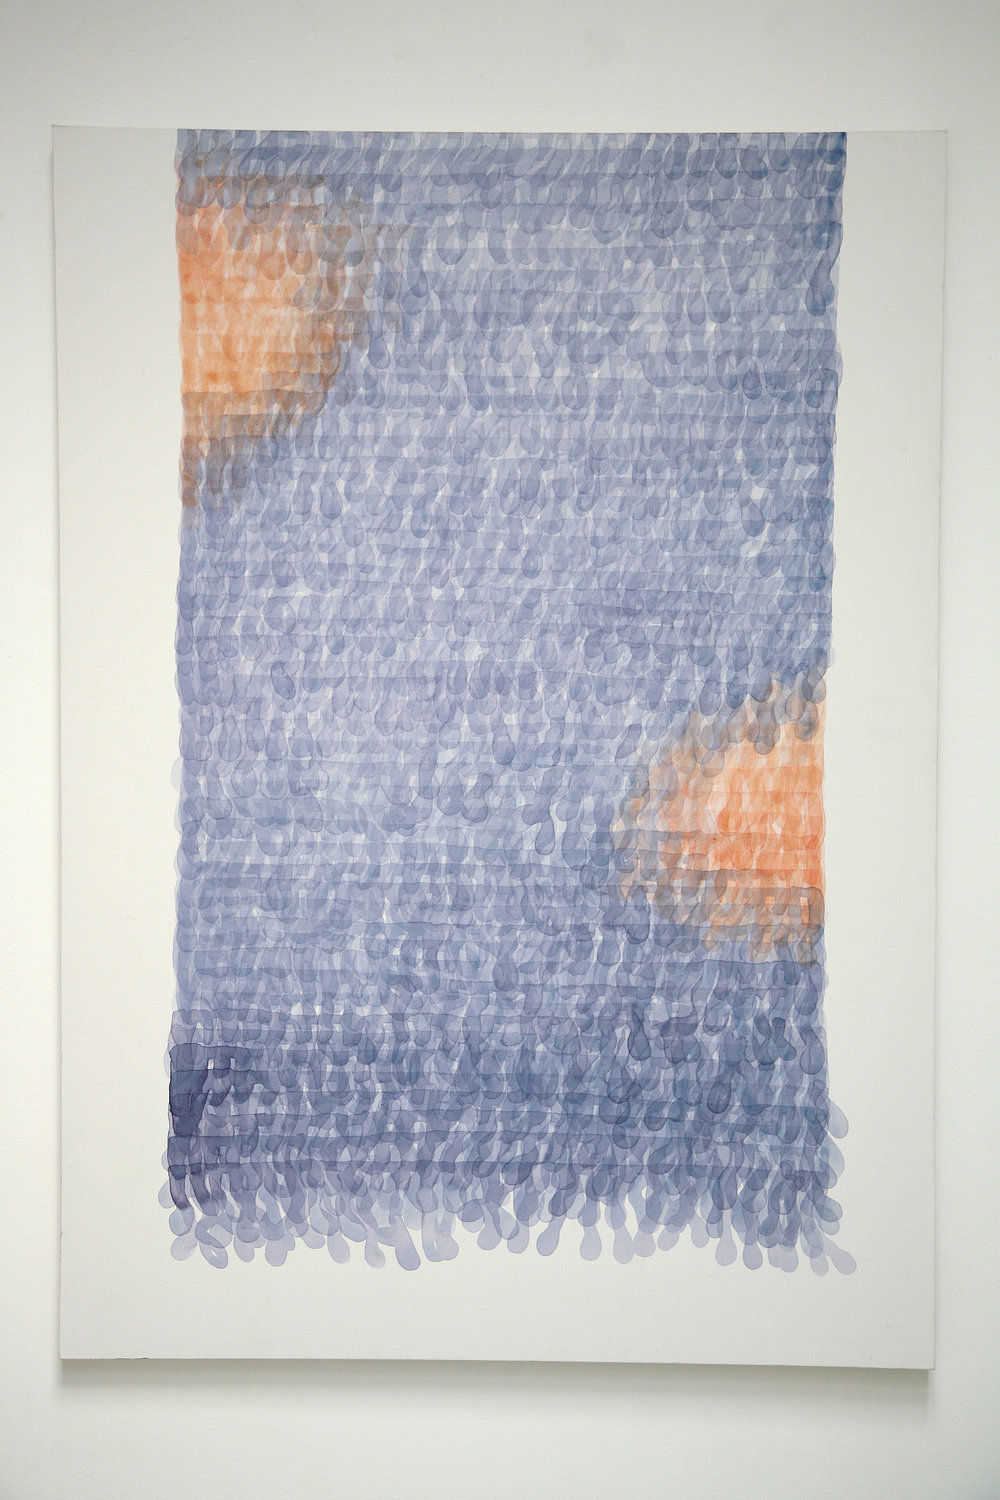 Bad Knitting - blue  (2015), acrylic on canvas, 100 x 140cm